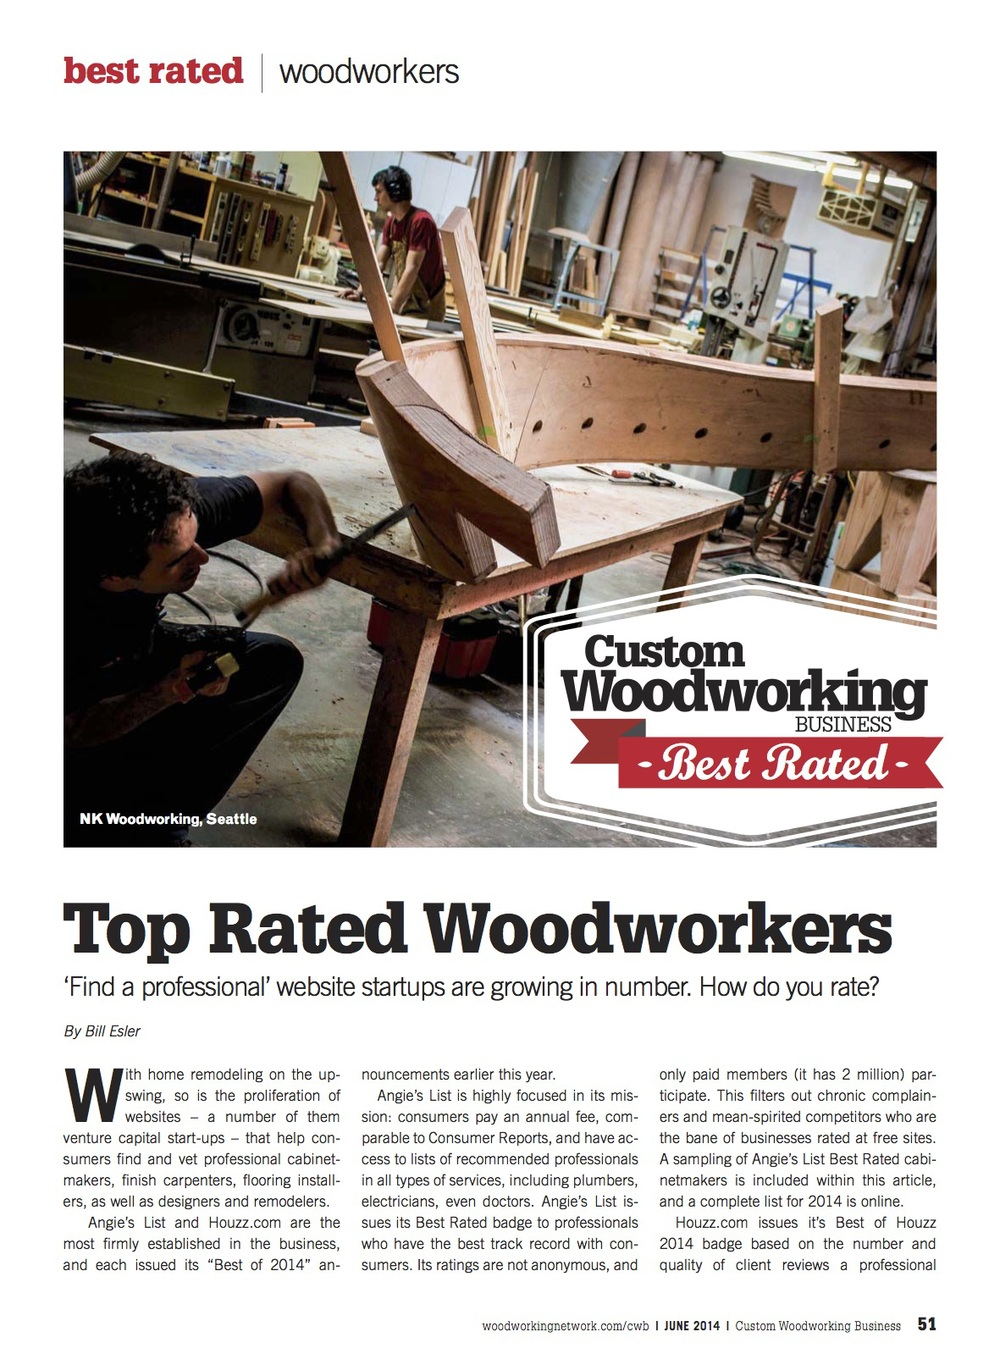 Top Rated Woodworkers